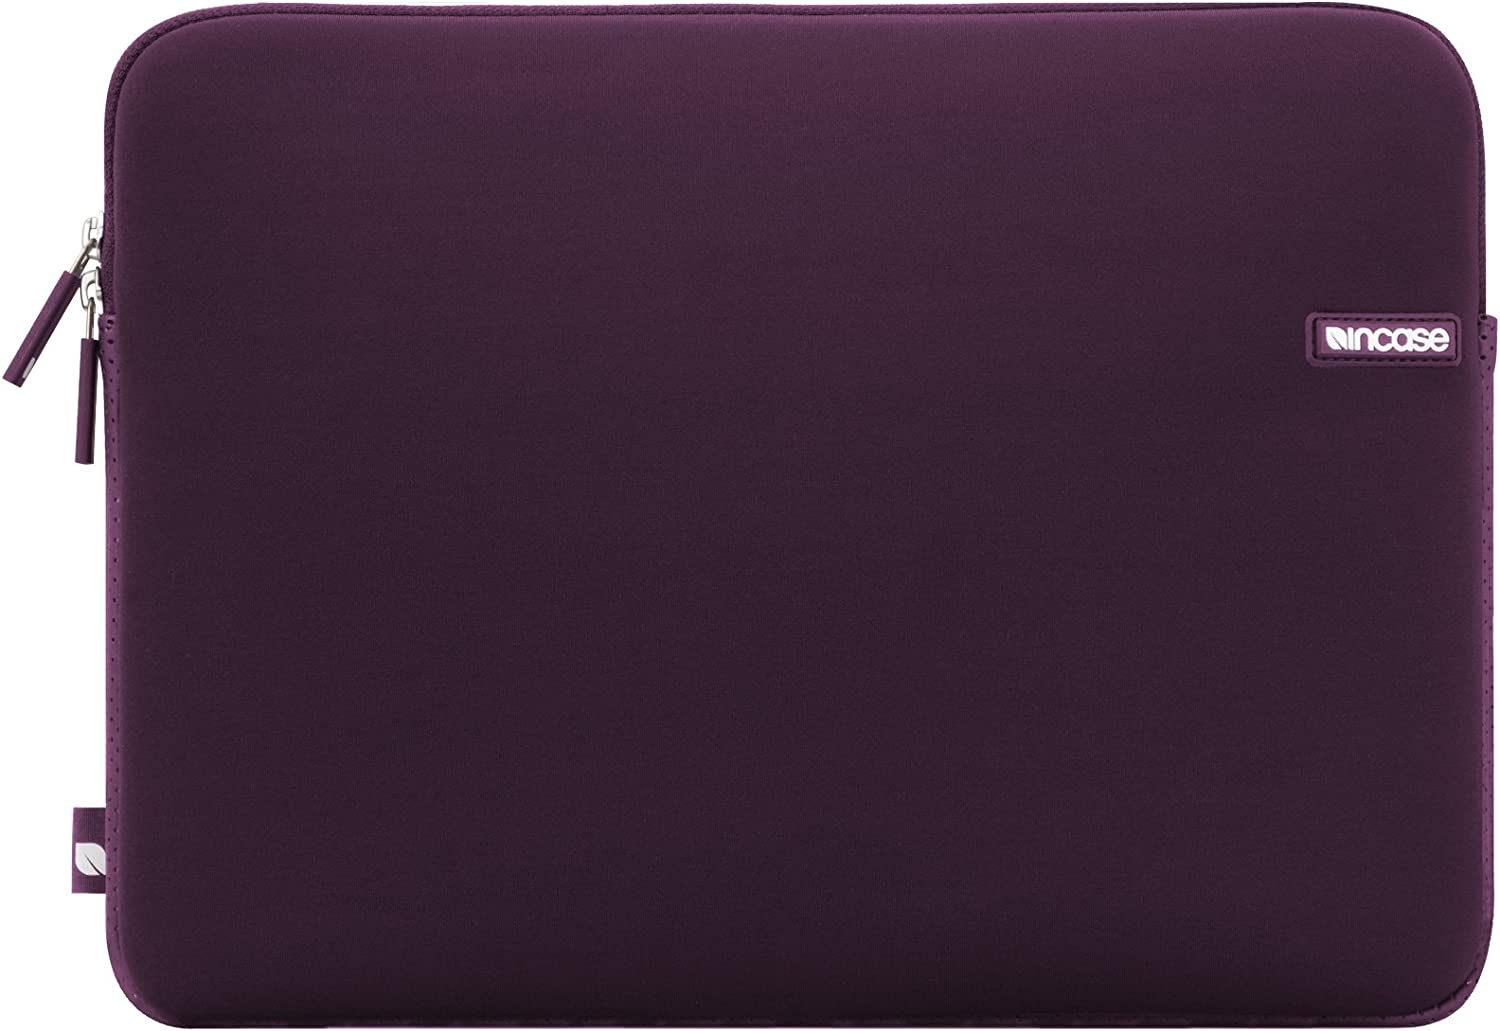 Incase Neoprene Sleeve for MacBook Pro (CL57656)